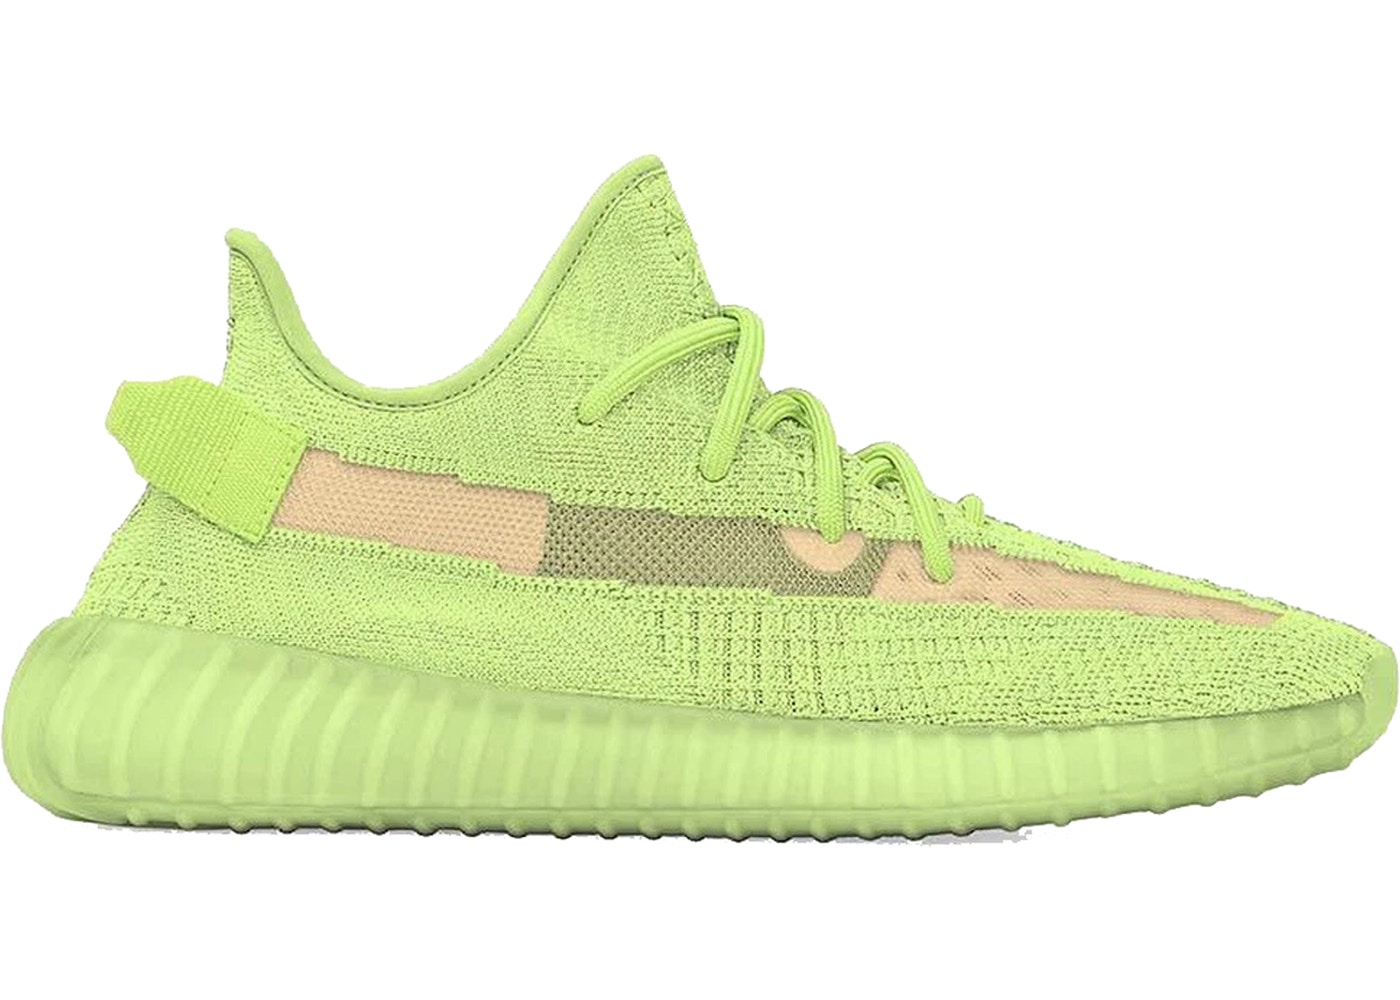 a630853ba Sell. or Ask. Size  13. View All Bids. adidas Yeezy Boost 350 V2 Glow